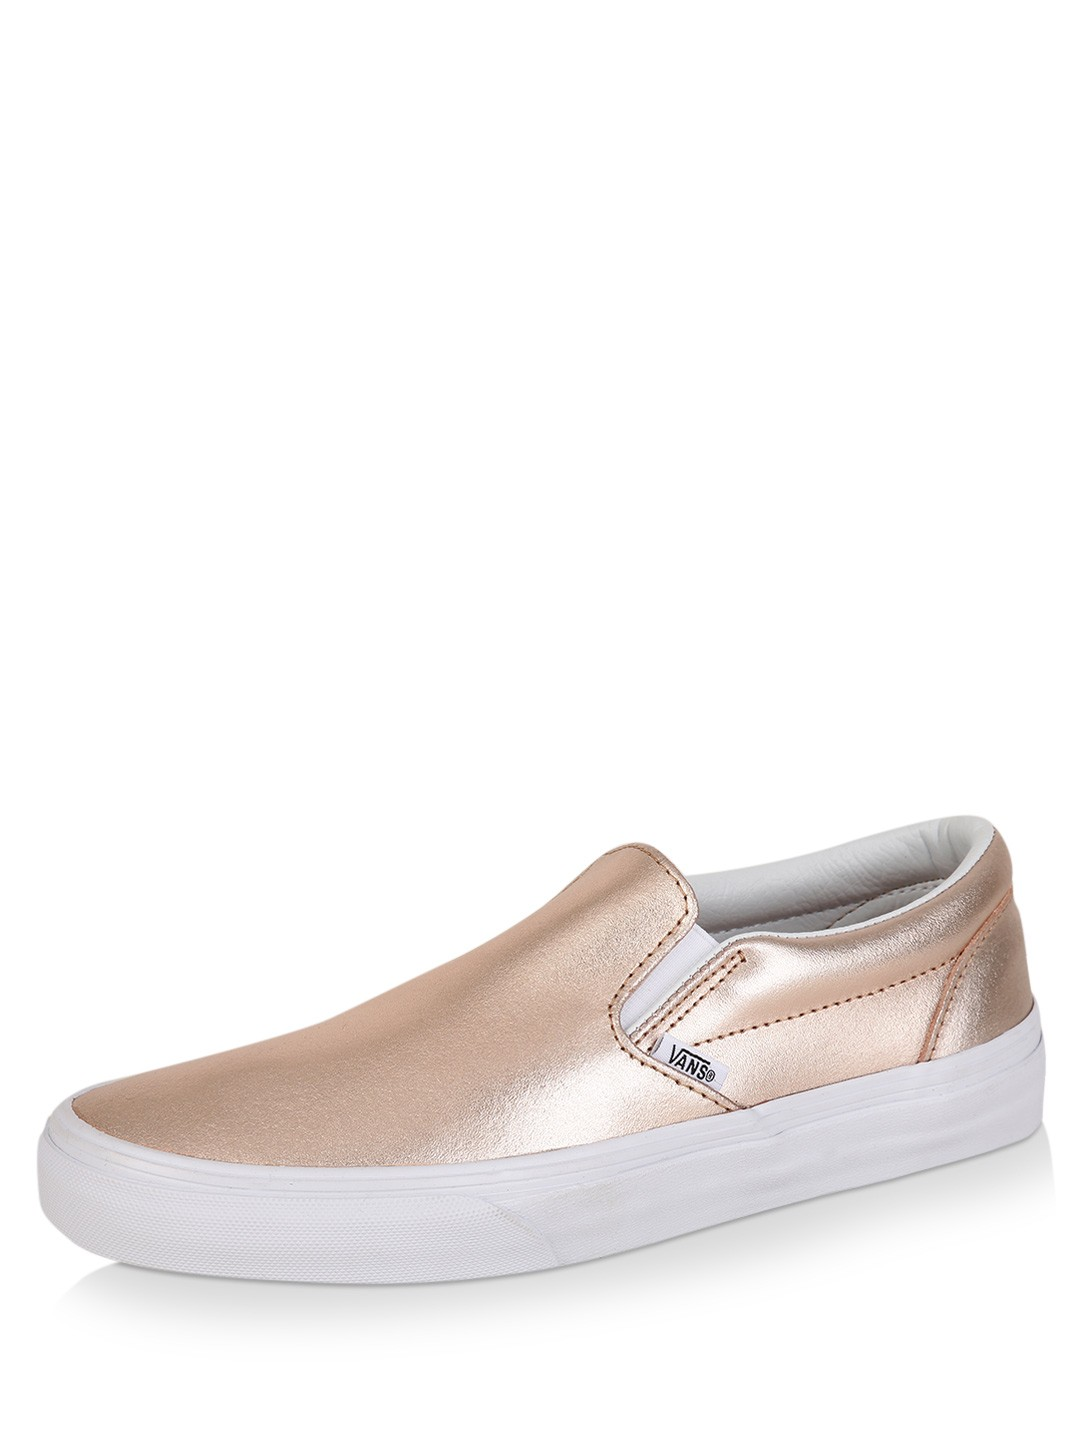 buy vans metallic classic slip on shoes for